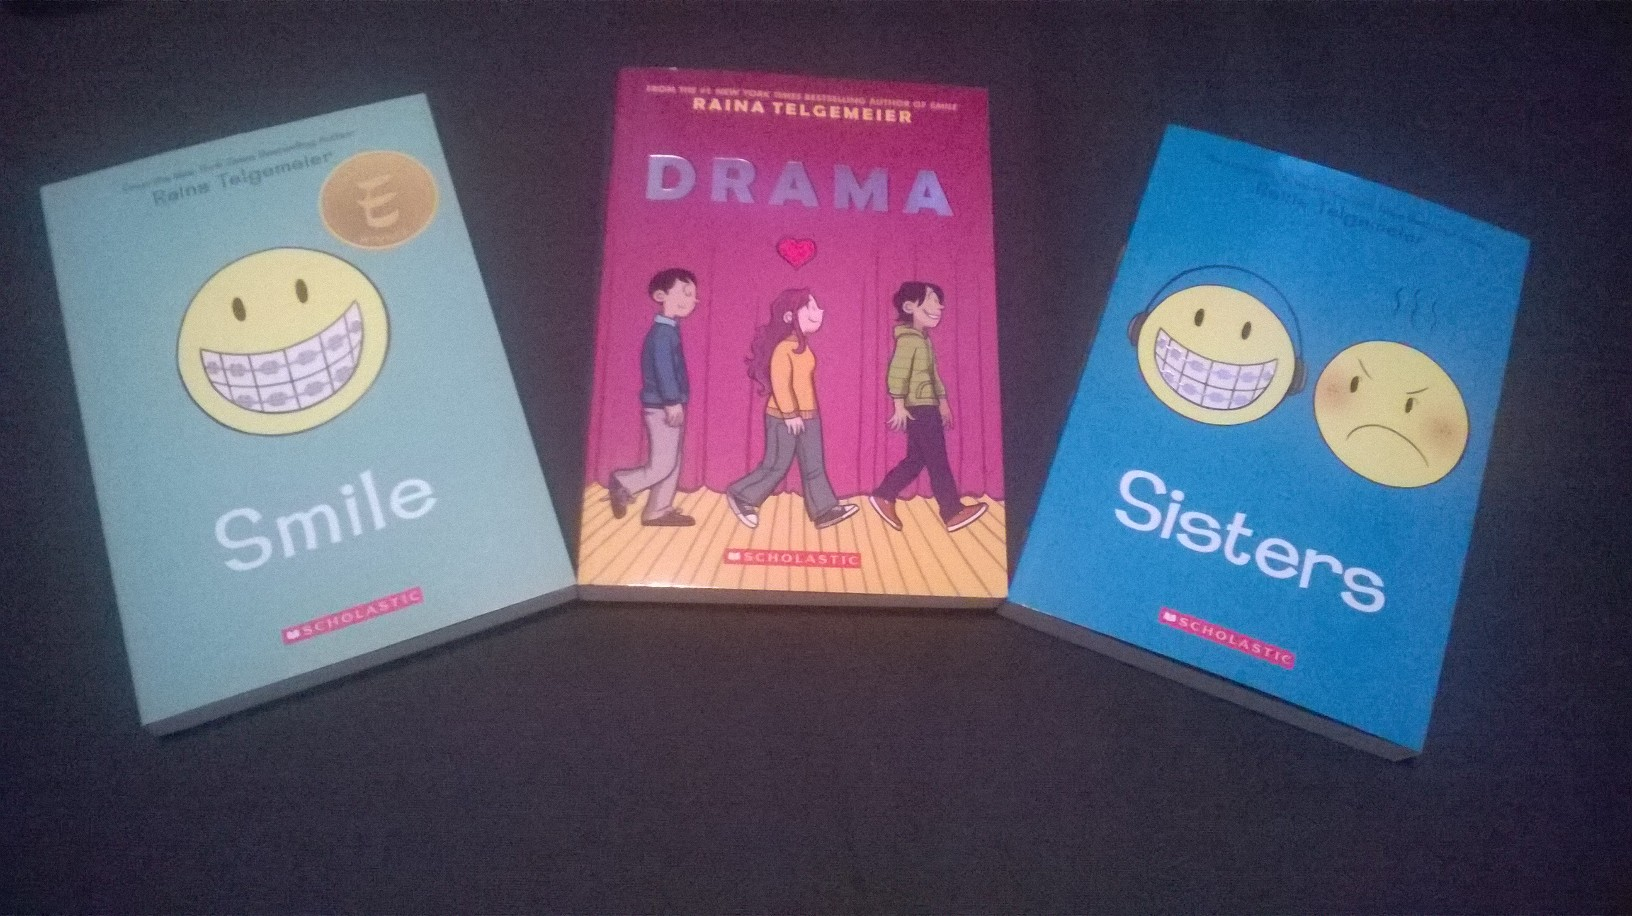 Raina Telgemeier has written a wonderful series of comics which are aimed at girls. I love them too though!